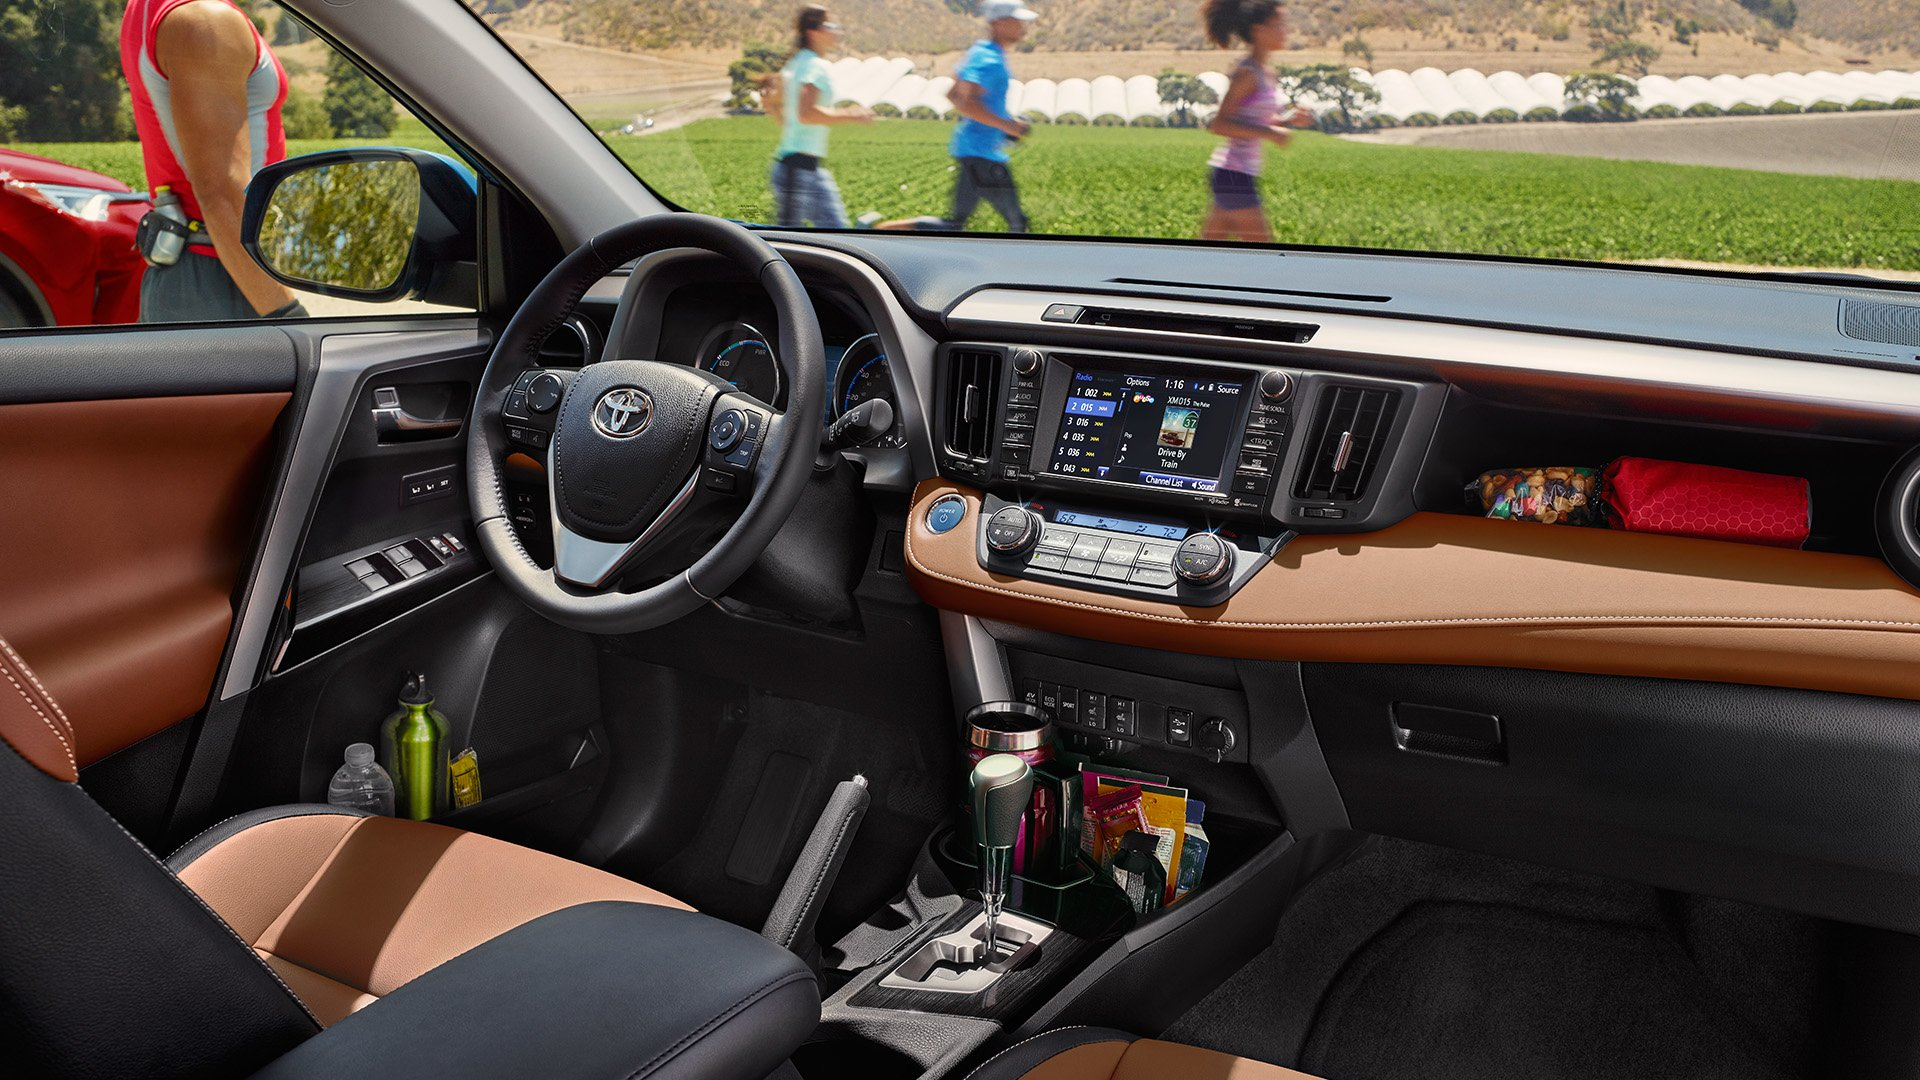 New Toyota RAV4 Interior Features